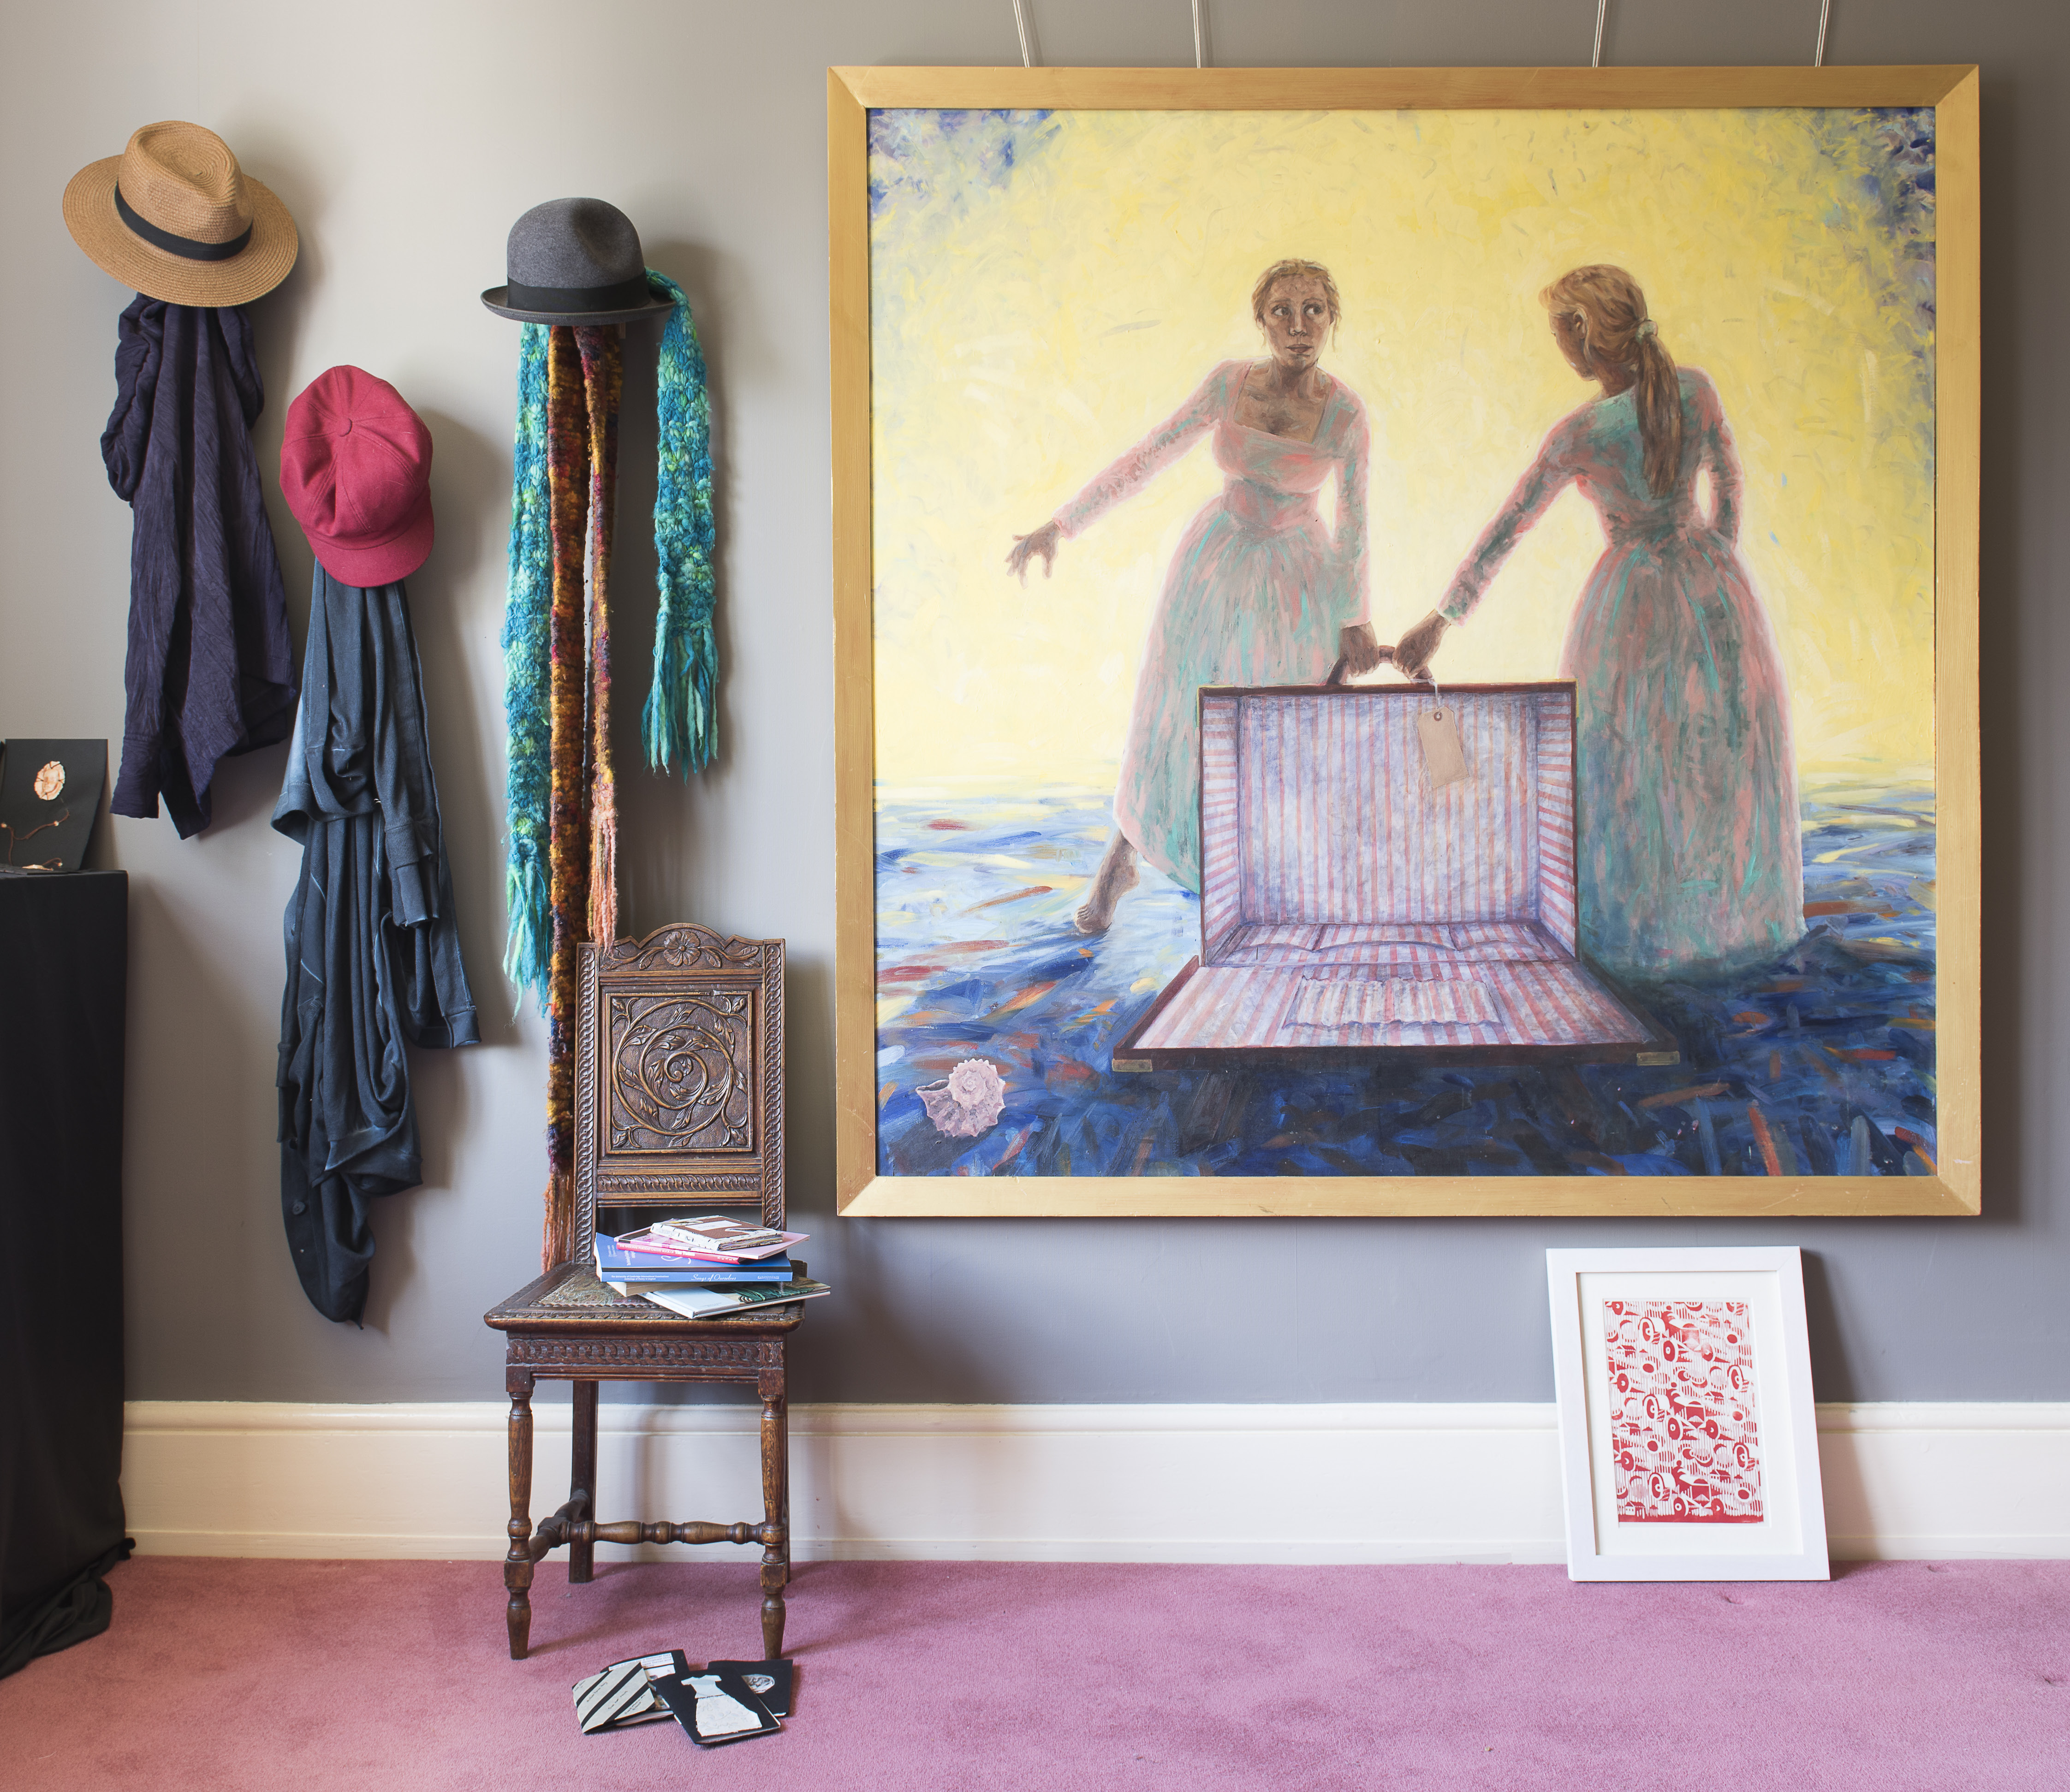 Bath-based artist Emma Joy's painting hangs over a print recreated from Soviet artist Sergey Burylin's work, Tractor